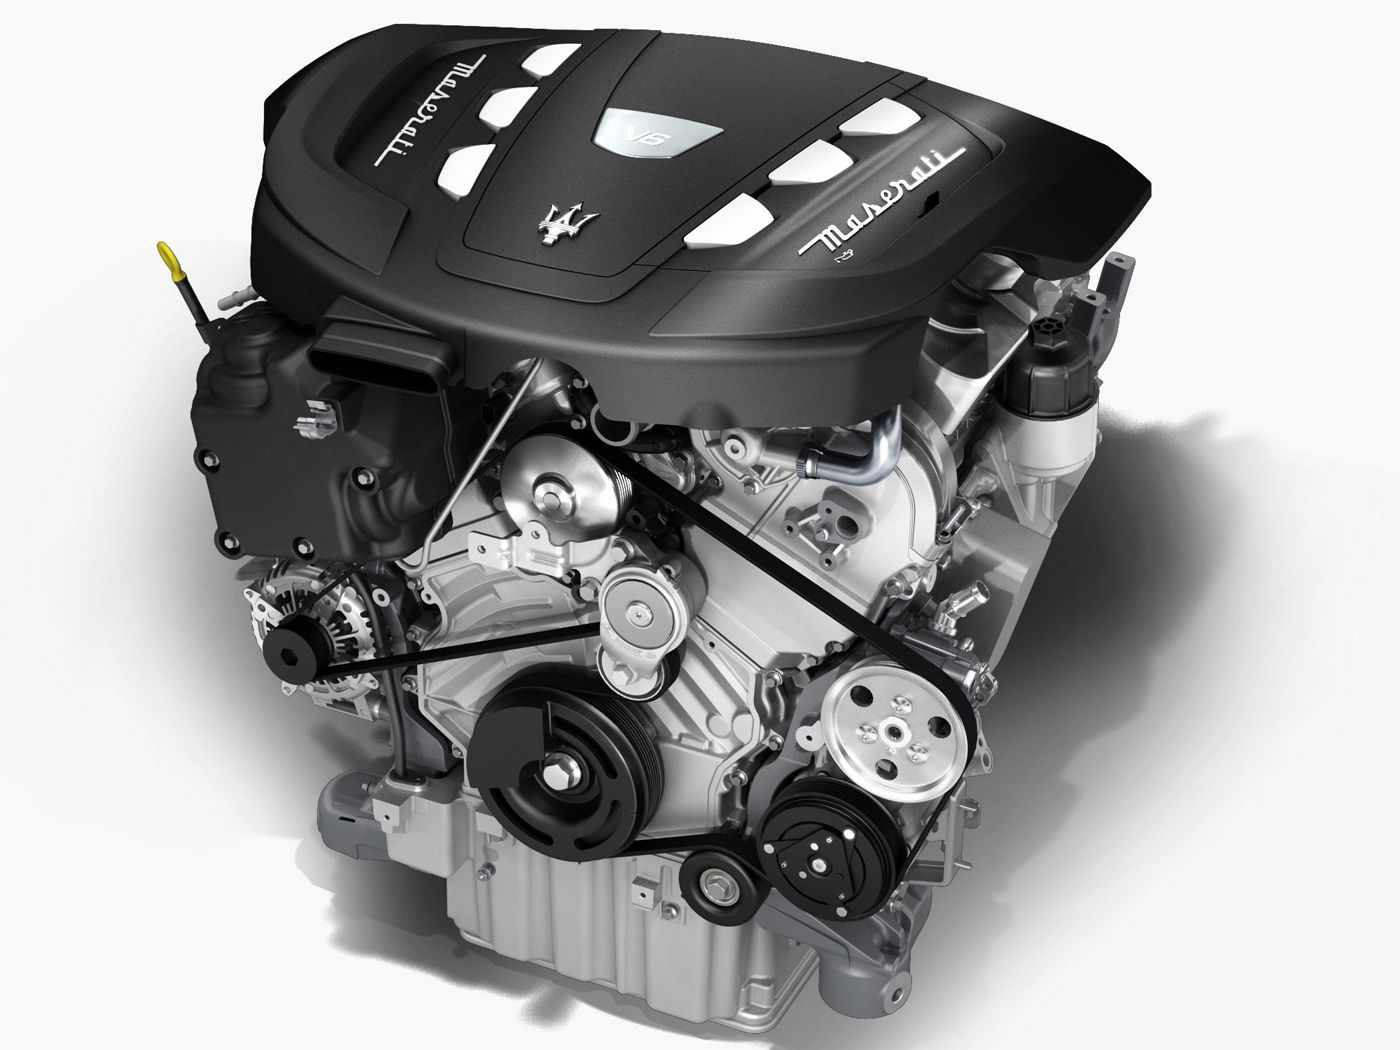 Maserati Quattroporte diesel engine - Twin turbo V6 - details and structure